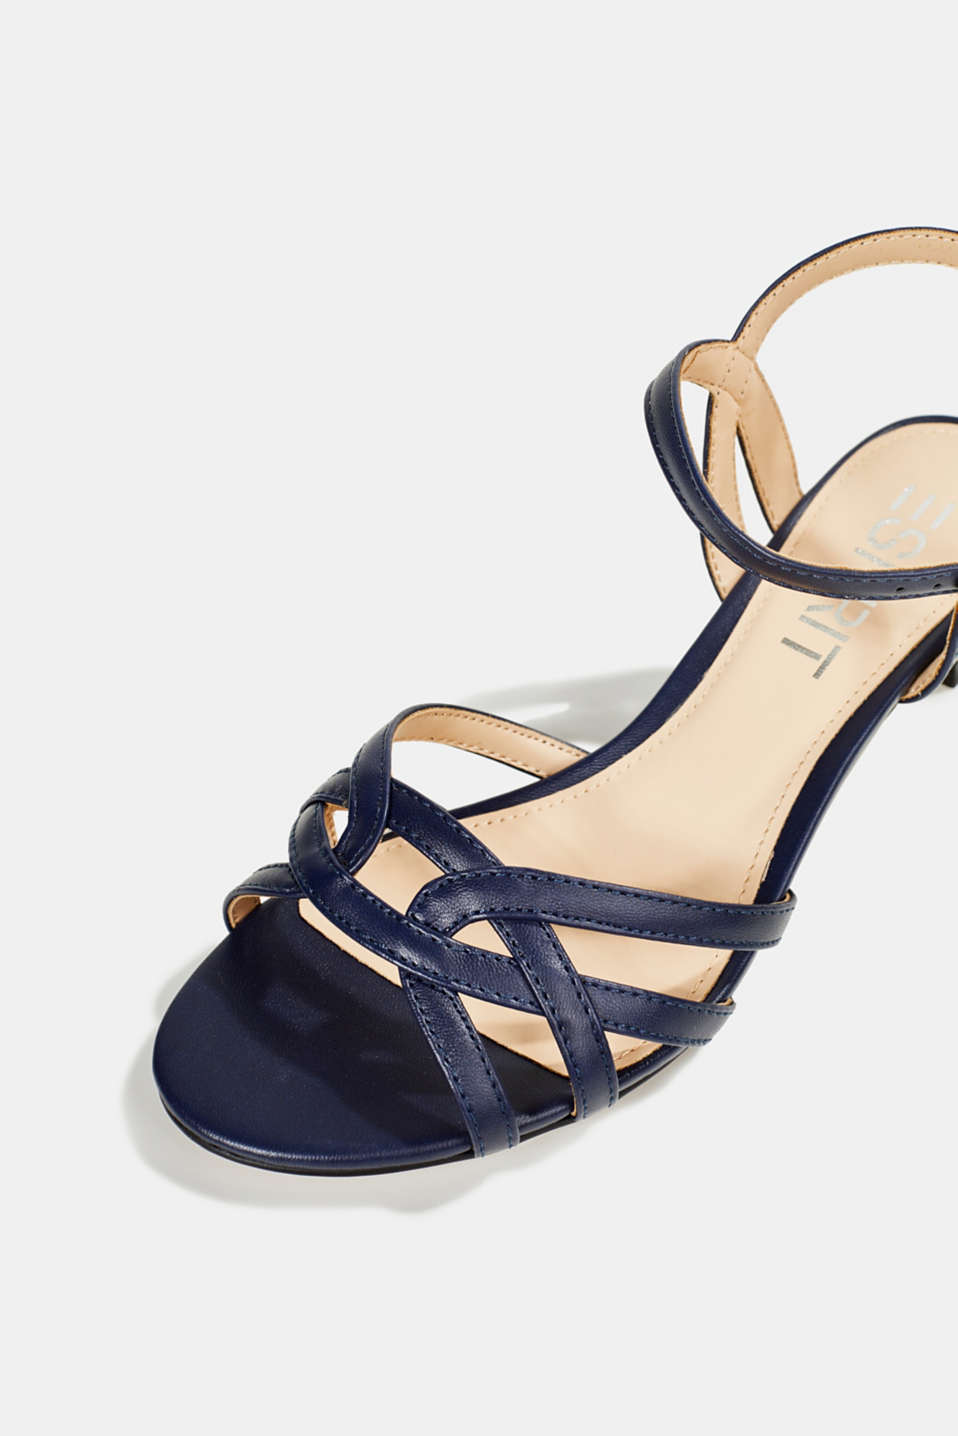 Sandals with straps in a braided look, NAVY, detail image number 4